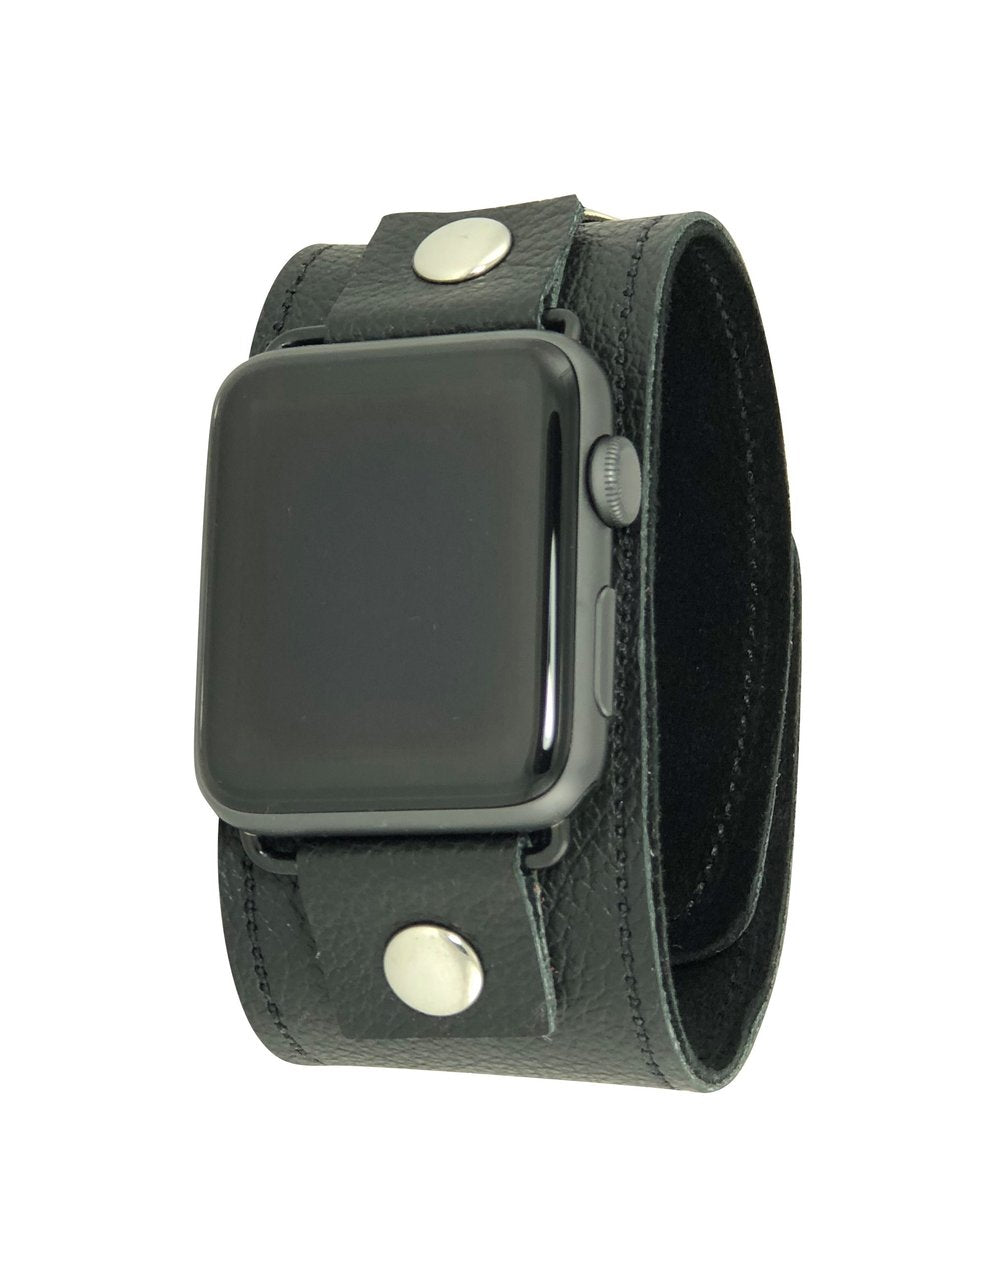 NAN Smart Watch Band - Black